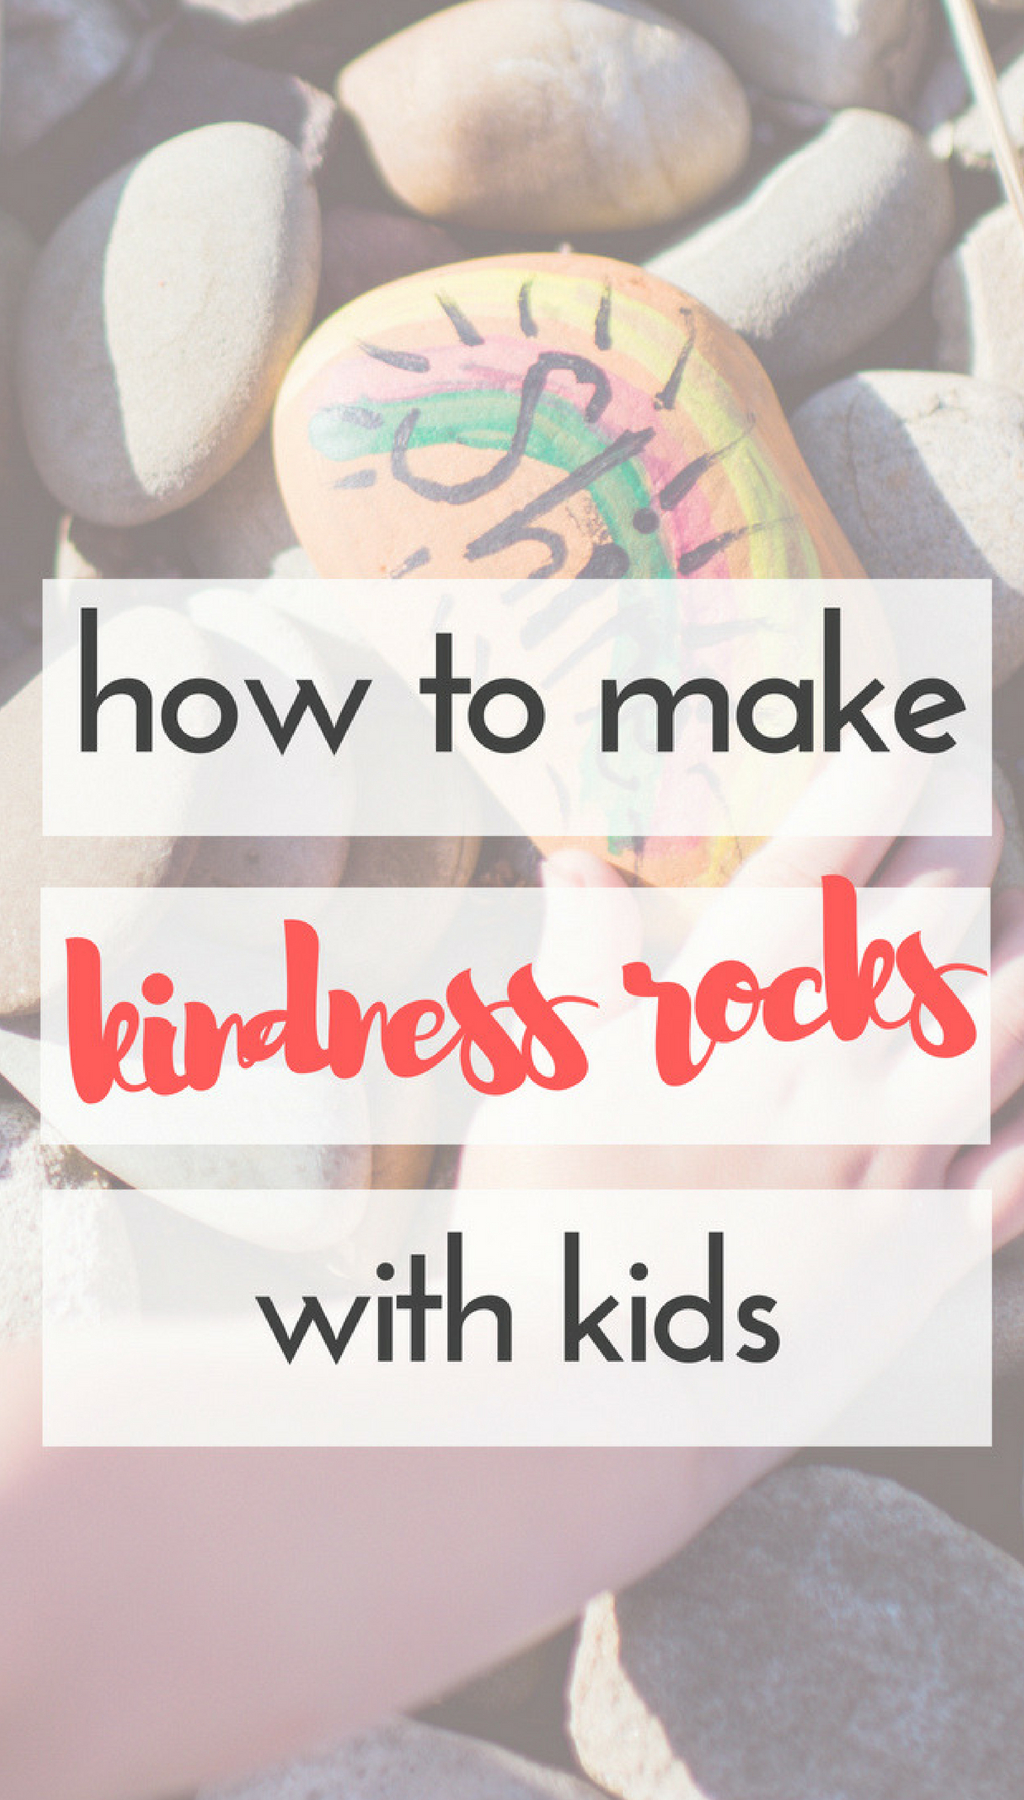 How to Make Kindness Rocks with Kids | If you haven't heard of The Kindness Rocks Project, it's a really cool concept. You create rocks with inspirational sayings or words of kindness, and then place them in places where others can find them. #kindness #rocks #kids #activities #crafts